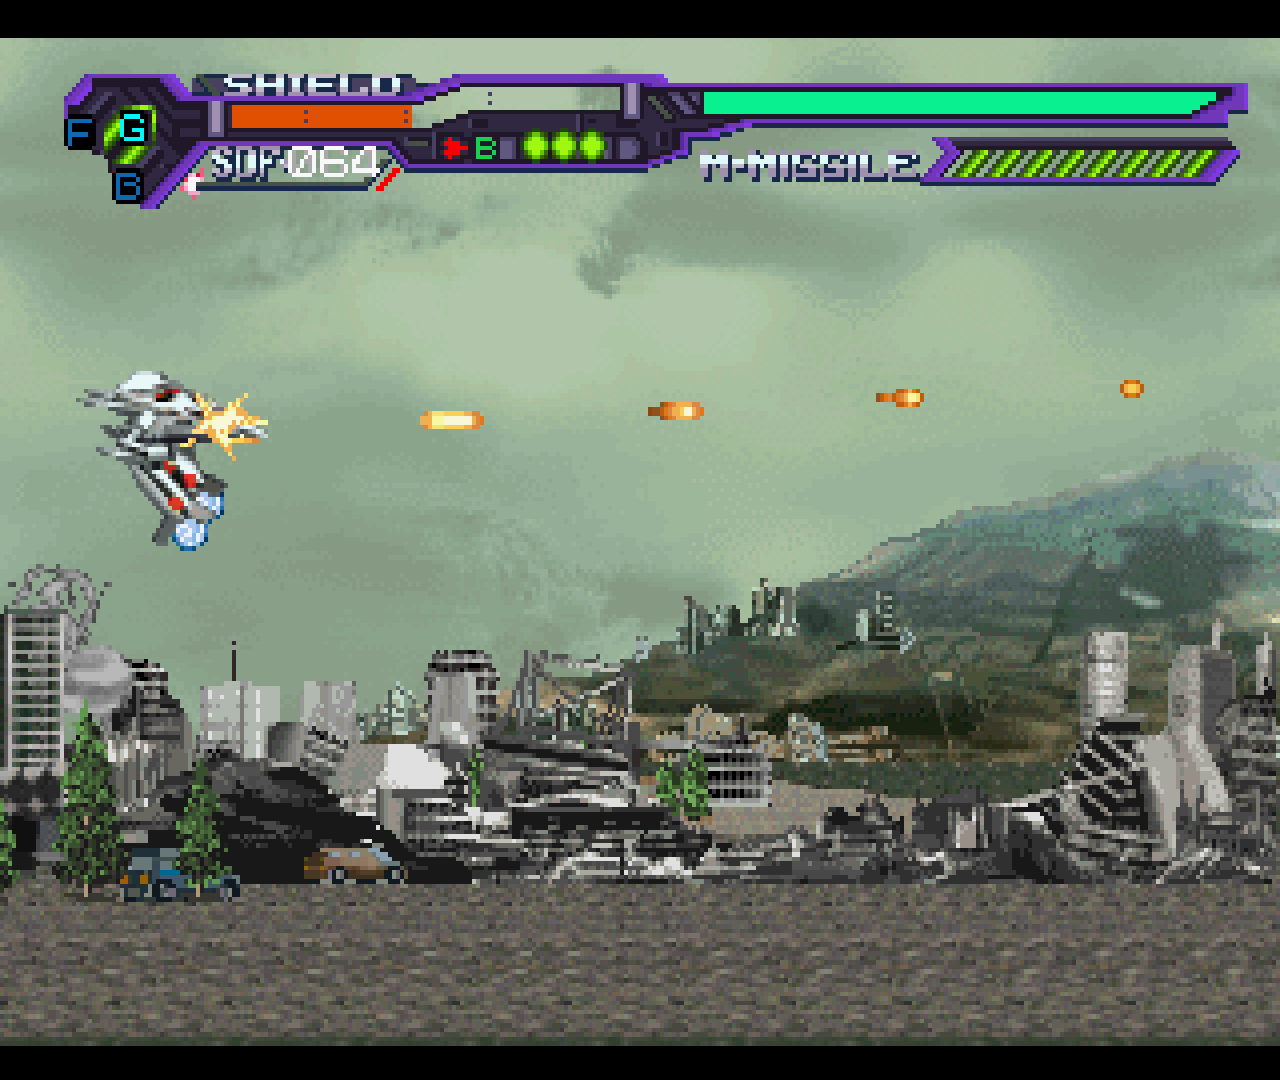 Figure 2 - Macross has three fighter stages, each with their own strengths and weaknesses